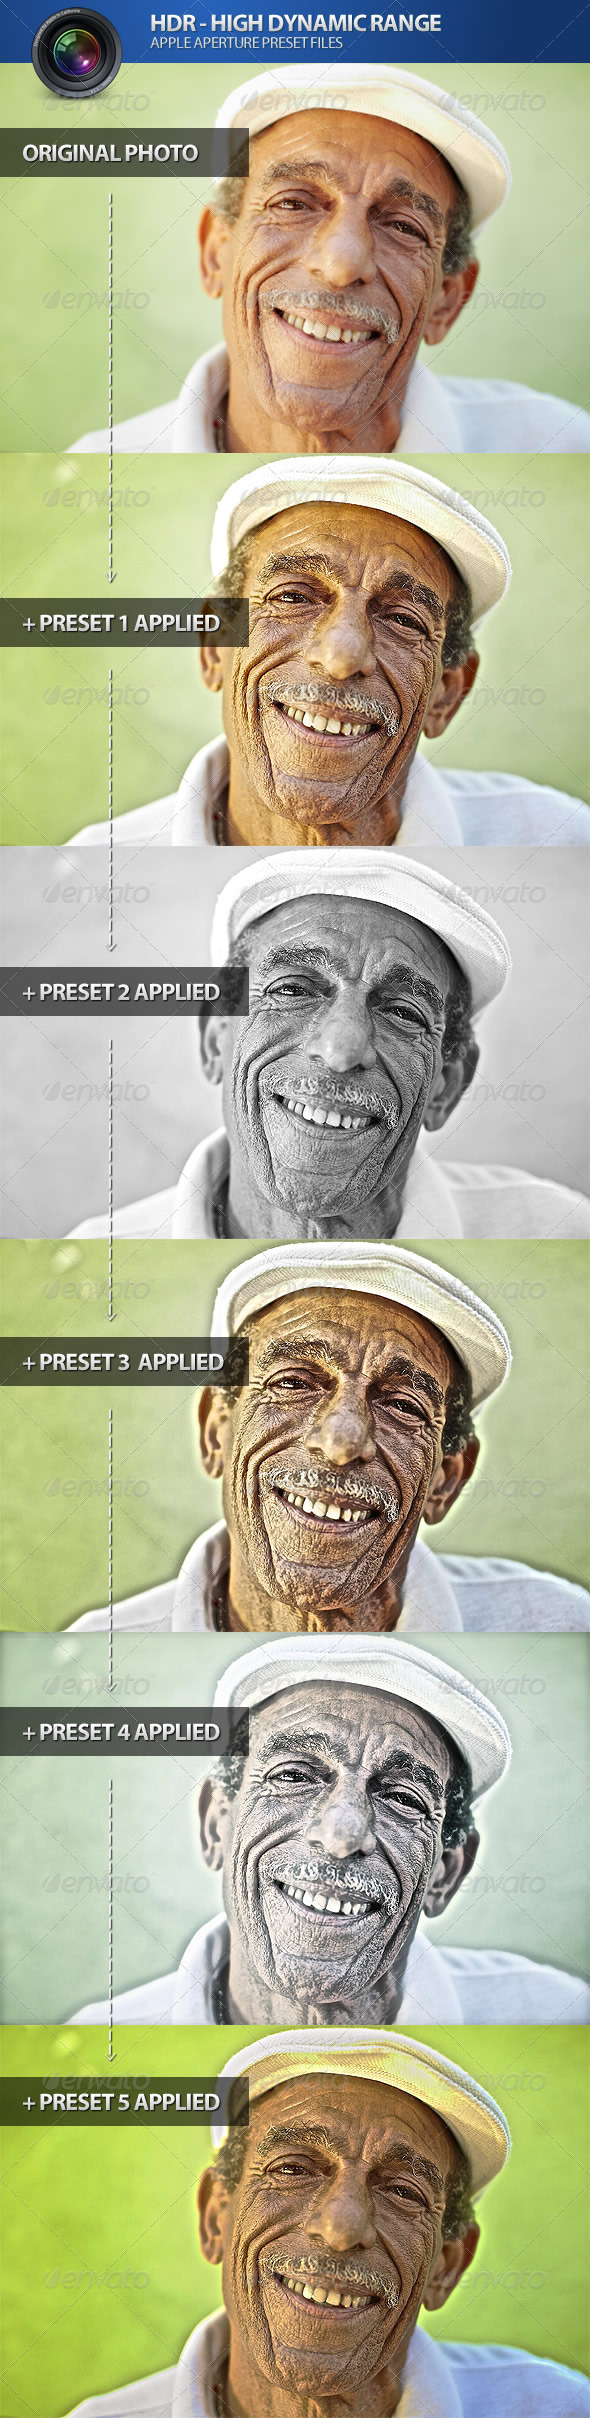 GraphicRiver HDR High Dynamic Range Aperture Presets 4720299